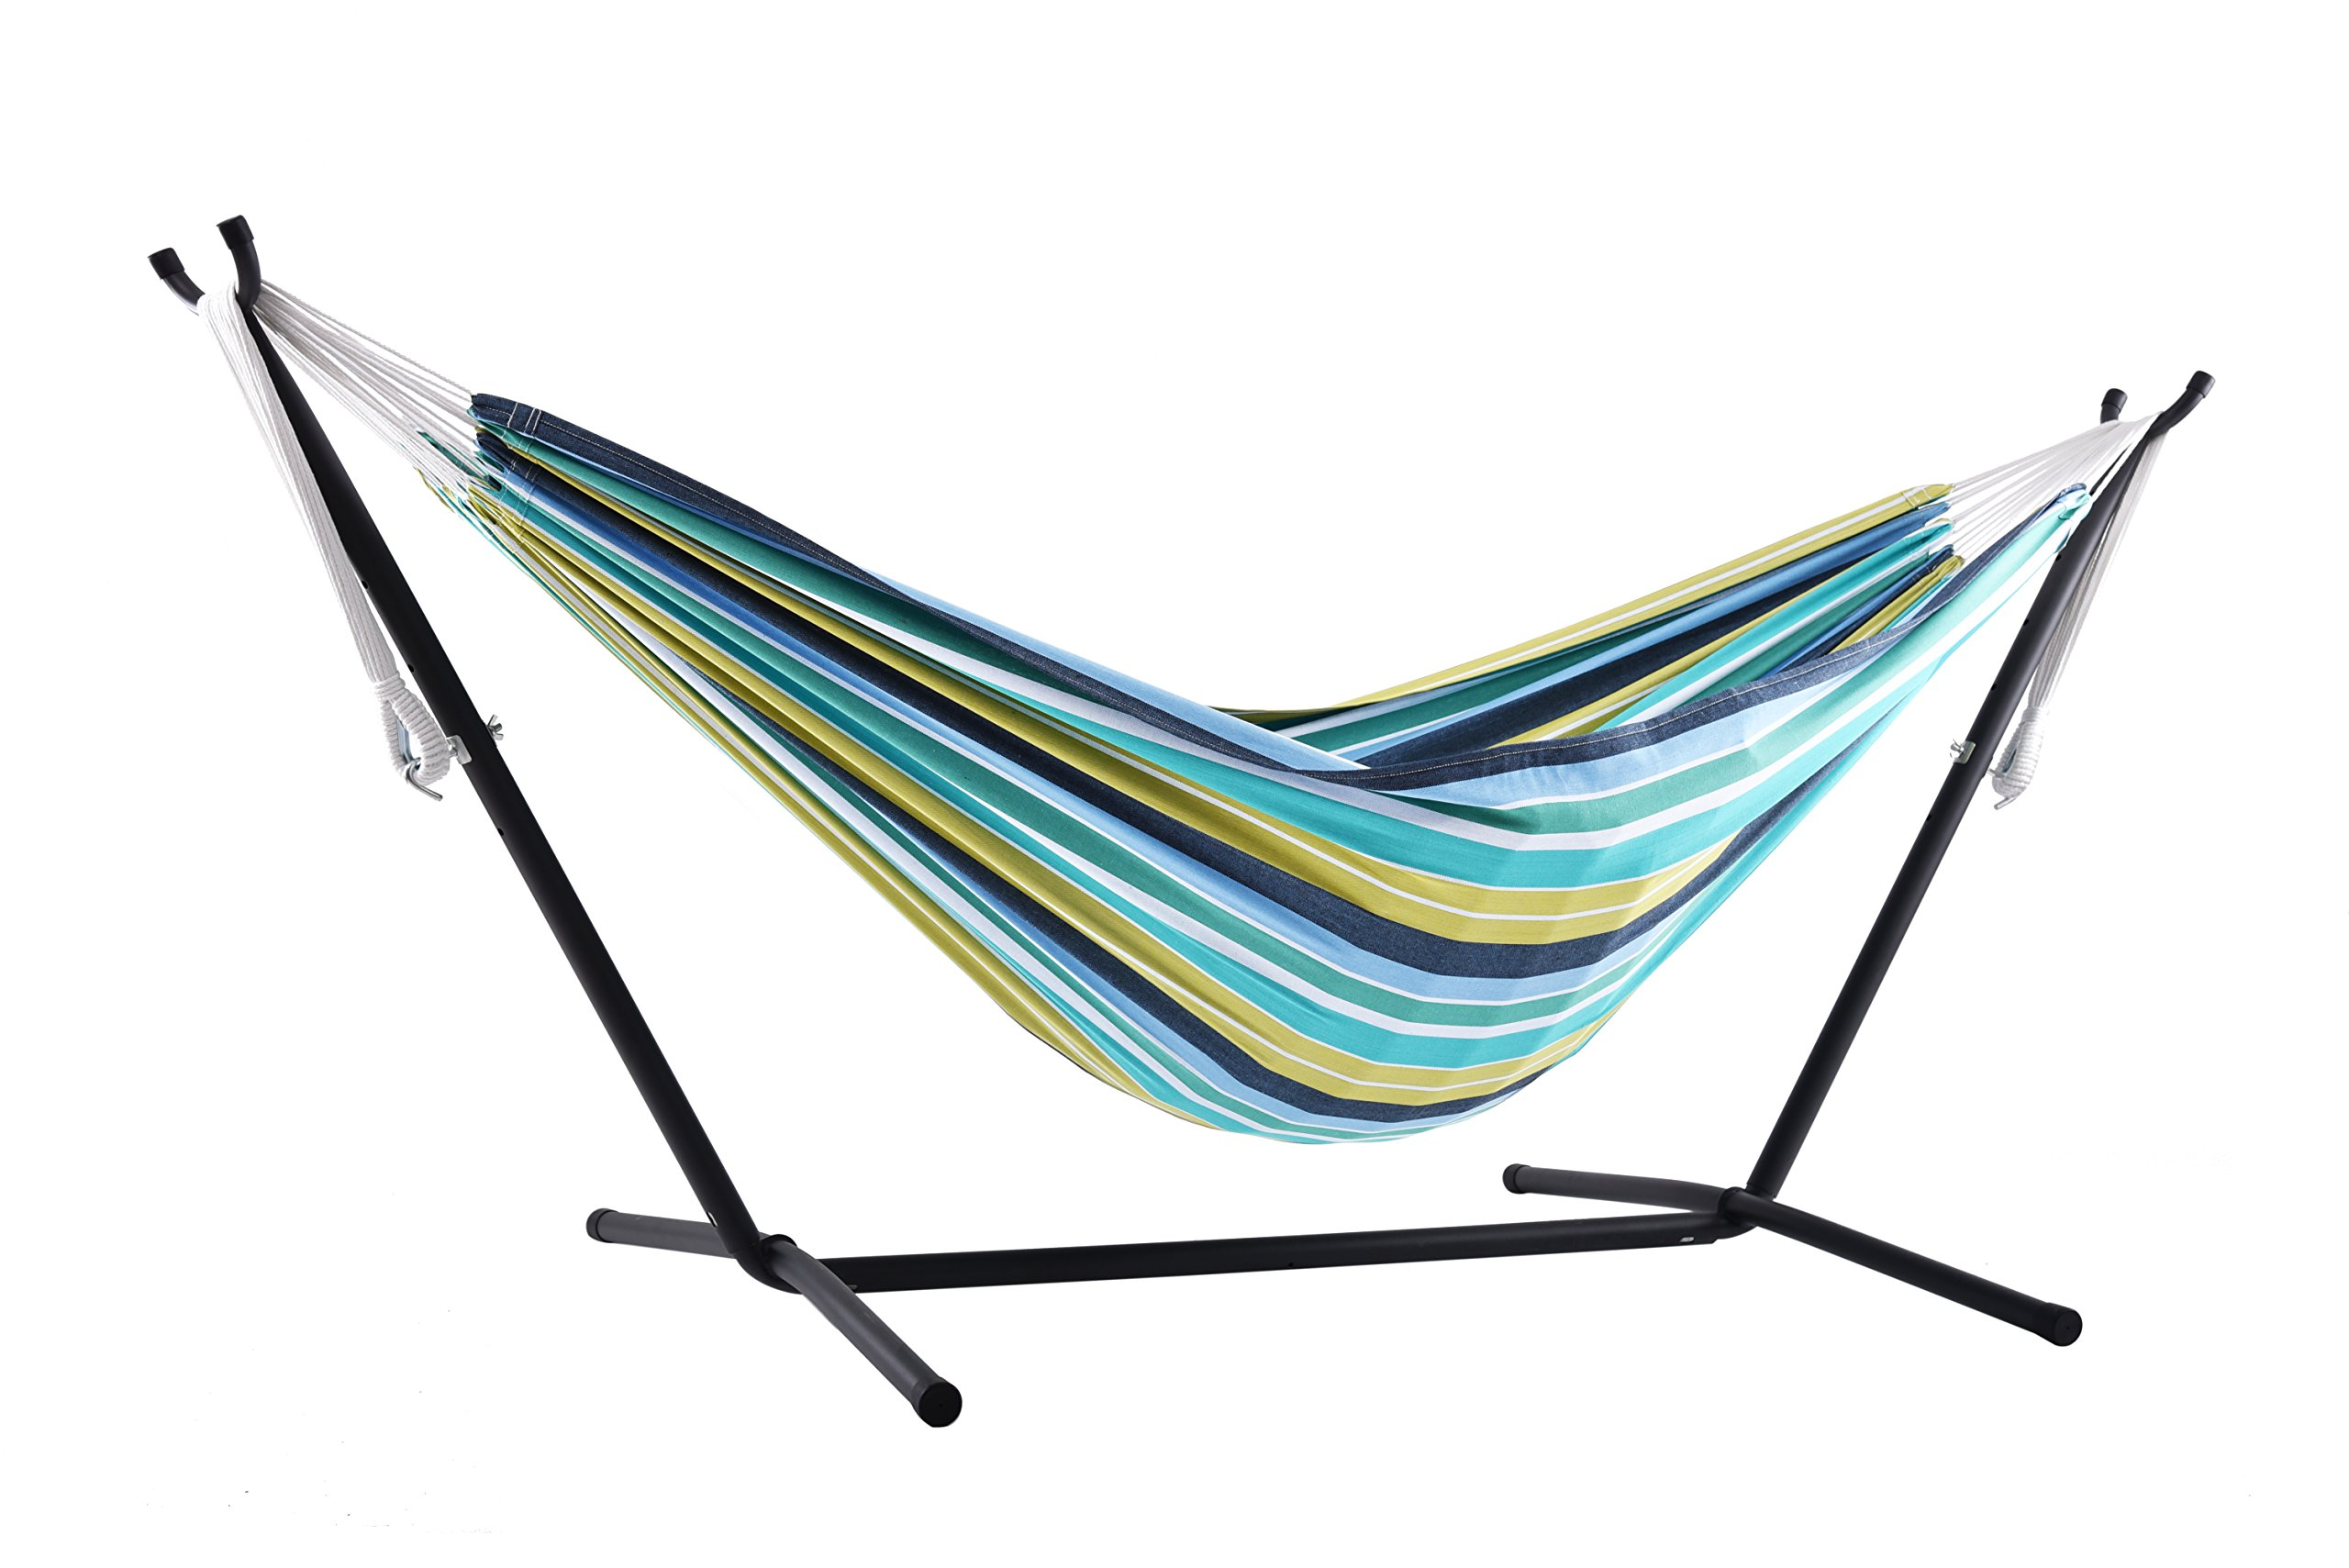 aluminum hammocks outdoor camping carabineers products gonex portable double with al hammock two straps person